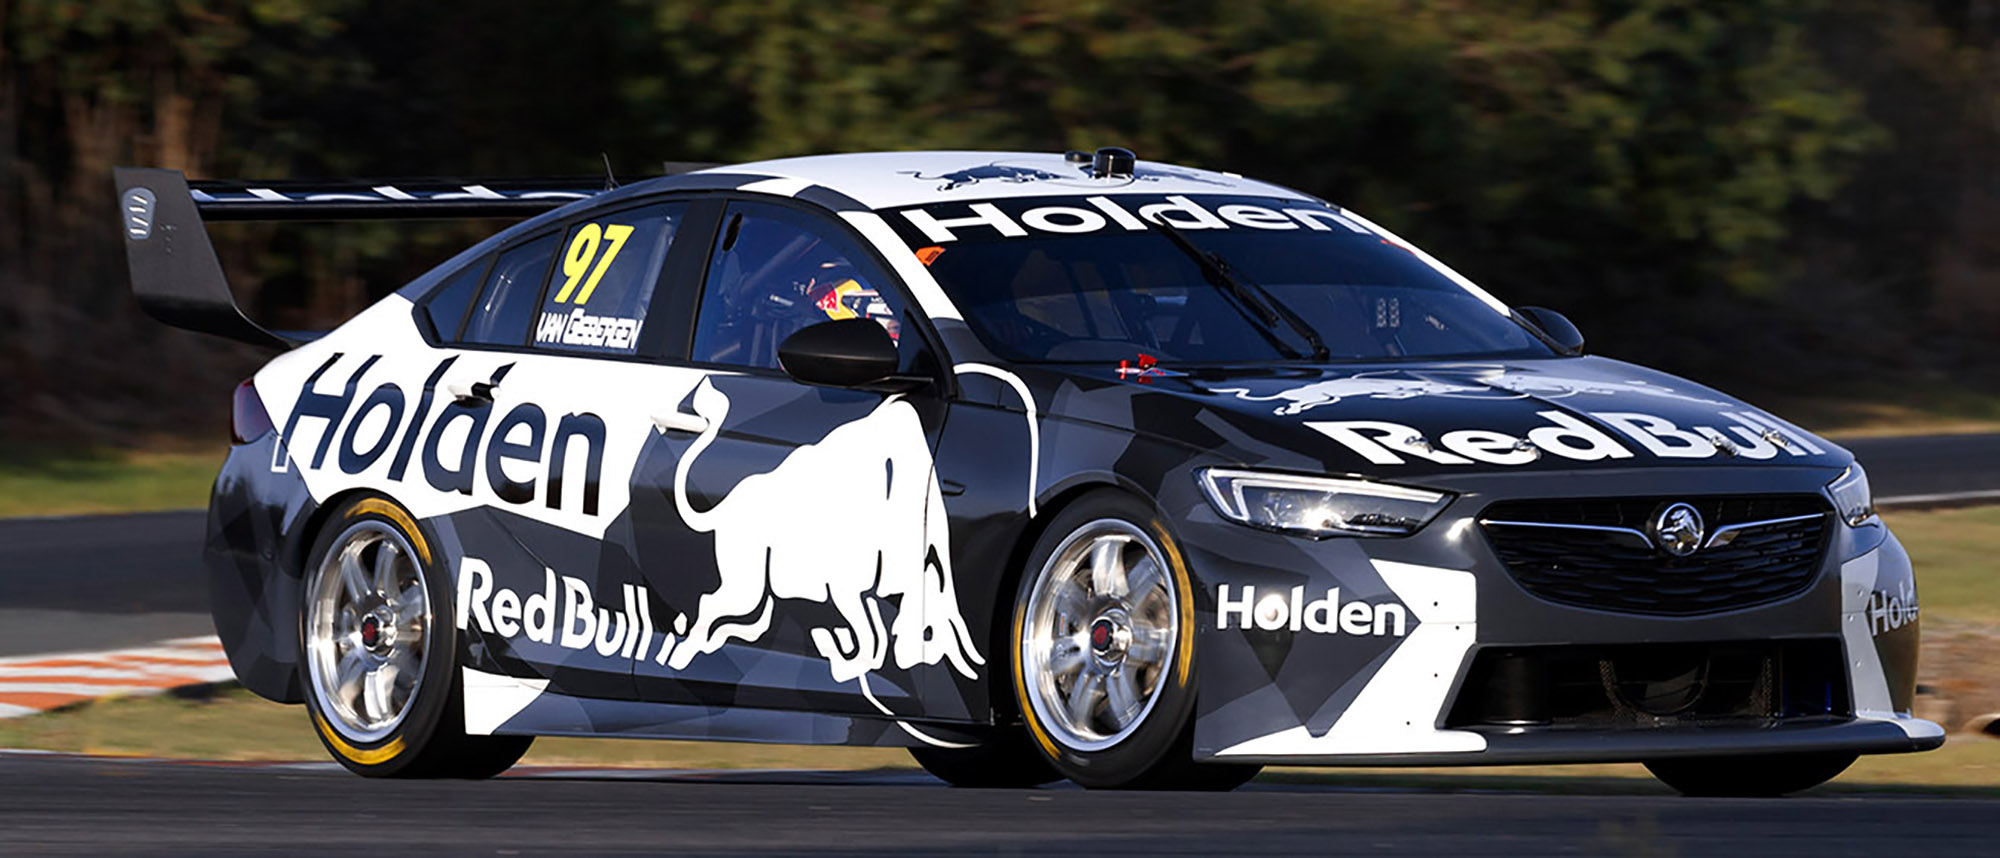 Secret Plan Chevrolet Camaro Could Replace Holden Commodore In V8 Supercars Caradvice